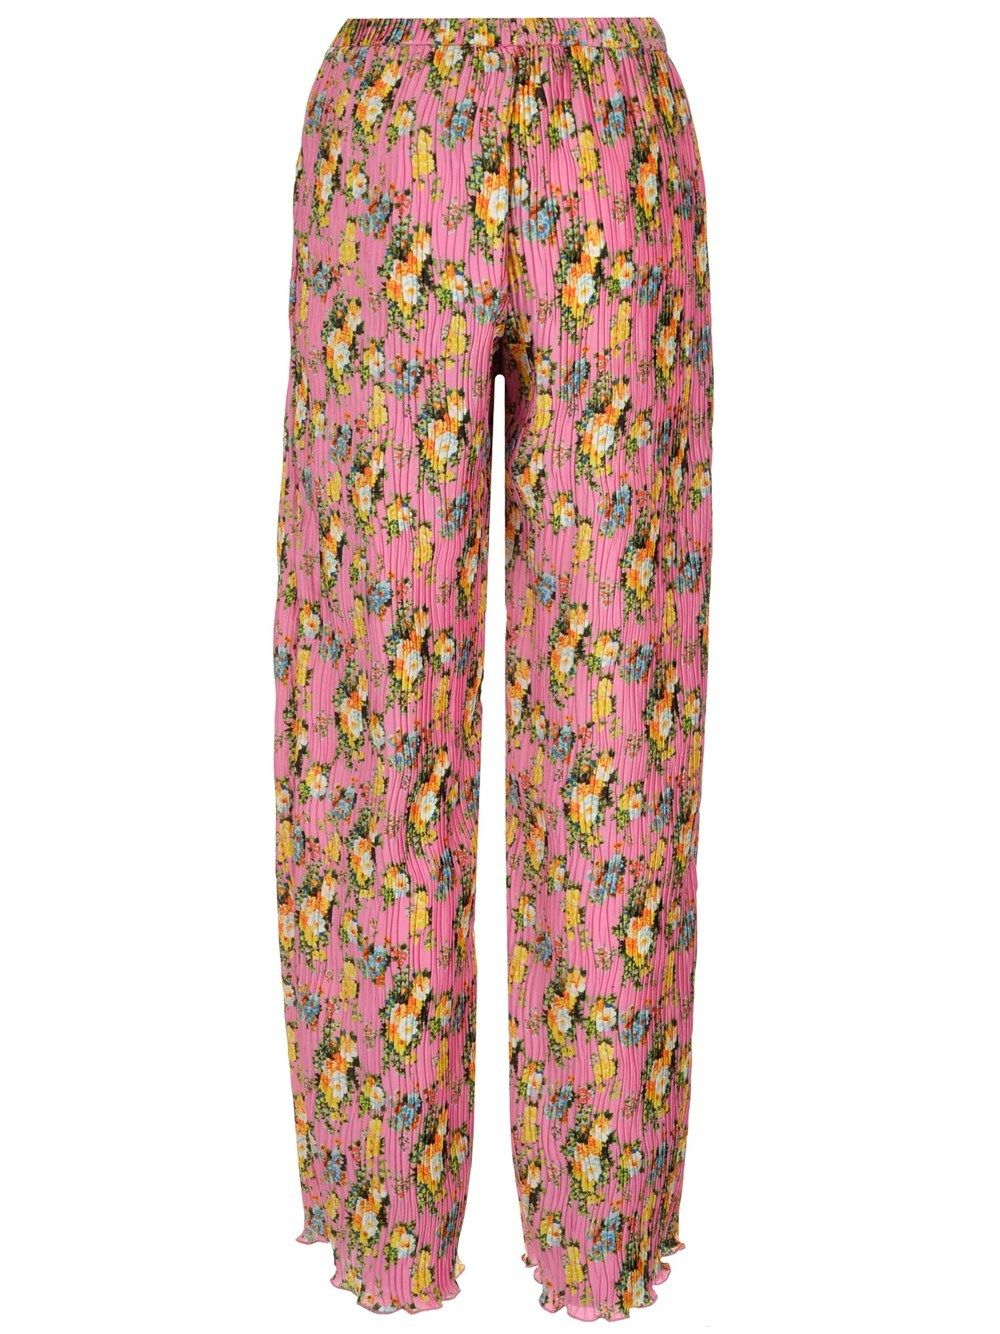 MSGM Pants MSGM WOMEN'S PINK OTHER MATERIALS PANTS